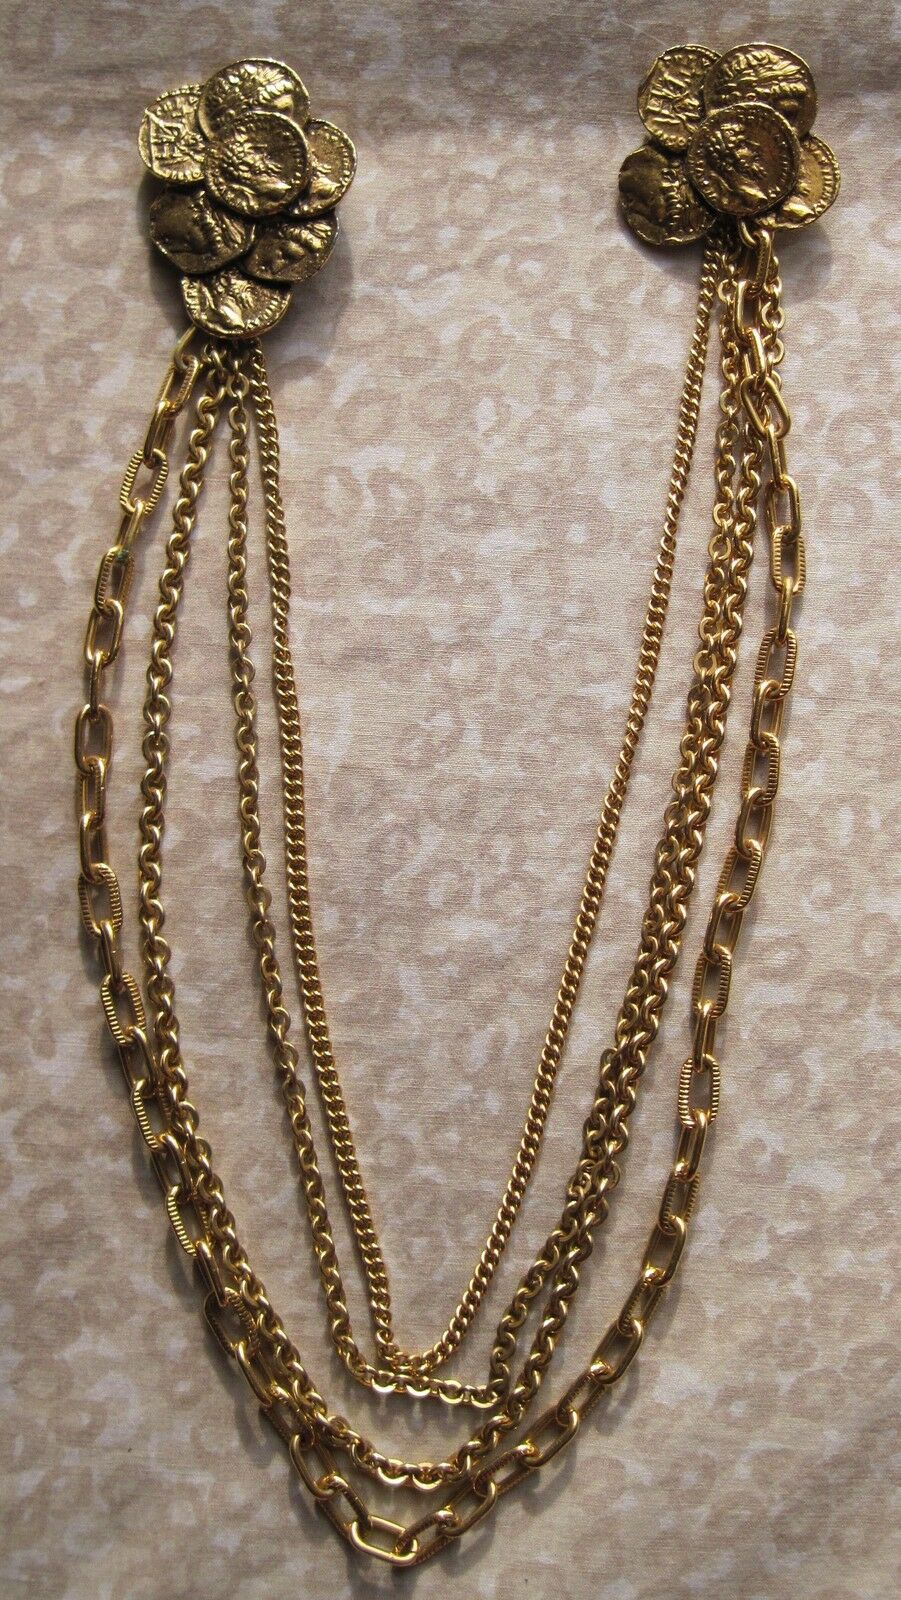 Vintage Chatelaine 2 goldtone Coin Brooches connected by 4 goldtone Chains